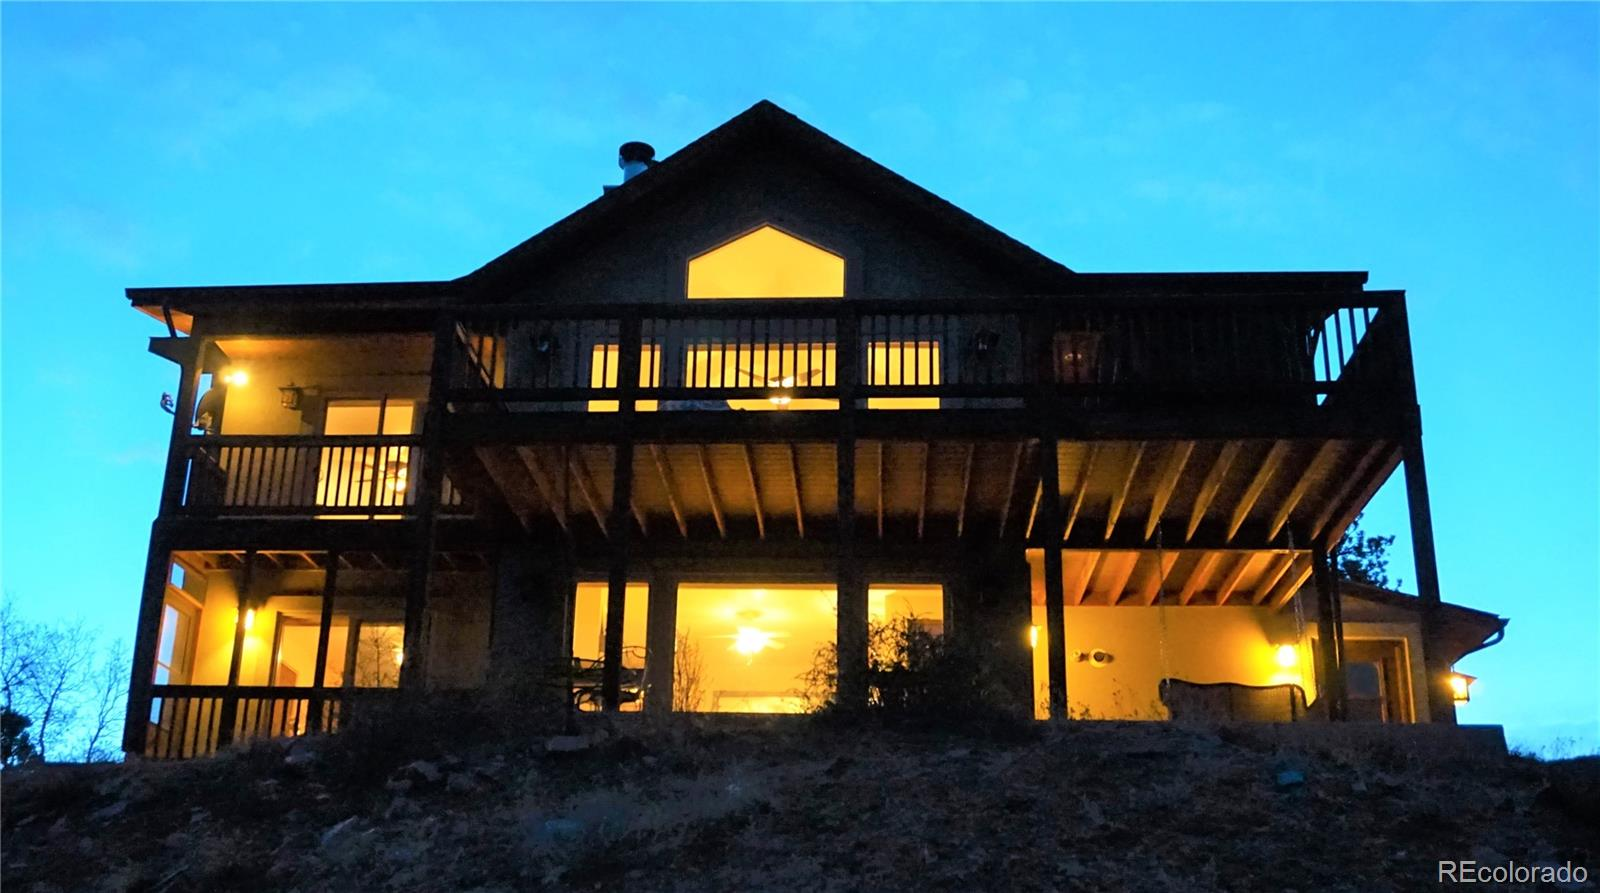 warning: zillow&realtor.com may not have correct address pinned. Priced below appraisal!! 57.4 acre Bear Trap Ranch beauty incredible VIEWS, private custom home on rugged Colorado Mountain property. Arrive on circular driveway & step onto the full length porch with trex decking. 4 beautiful fireplaces, with large stone surround in LR, beckons you inside. Newly re-finished wide plank classic wood floors with in-floor radiant heat. Stylish neutral color scheme, vaulted ceilings, recessed lighting offers classic coziness...Supplemental Remarks:      Prepare family feasts and engage with your guests in the open, well equipped kitchen featuring Jenn-Air down draft gas range facing the sublime mountain range views, single bowl sink, walk-in pantry with electric, plus convenient pantry glide-outs. Custom DR Antler chandelier and all appliances stay. Master on main features en suite 5 piece w/shower for 2, deep soaking tub, walk-in close  t with wood flooring, gas fireplace, sitting area, balcony, more incredible views.You'll find artist stained architectural interior doors, high-end champagne fixtures throughout. Custom soft close built-in cabinetry throughout + great storage in mud room from garage. Hunter Douglas shades throughout. Custom features at every turn. Buried propane tank and electric lines, built-in safe. Over-sized 2 car garage w/ lovely wood-look arched doors. No maintenance stucco siding! RV parking + up to 10 parking spaces for your guests. 360 views galore at this Colorado mountain retreat. Peaceful enjoyment, wildlife, awe inspiring views from one of 5 trex porches, 4 covered, 1 all season porch. Whether you enjoy nature, rappelling, birding, hiking, are a hunter or the mountains are simply calling, you'll find plenty to do here at this mountain oasis... this breathtaking property will always welcome you Home. Envision your new beginning here today!